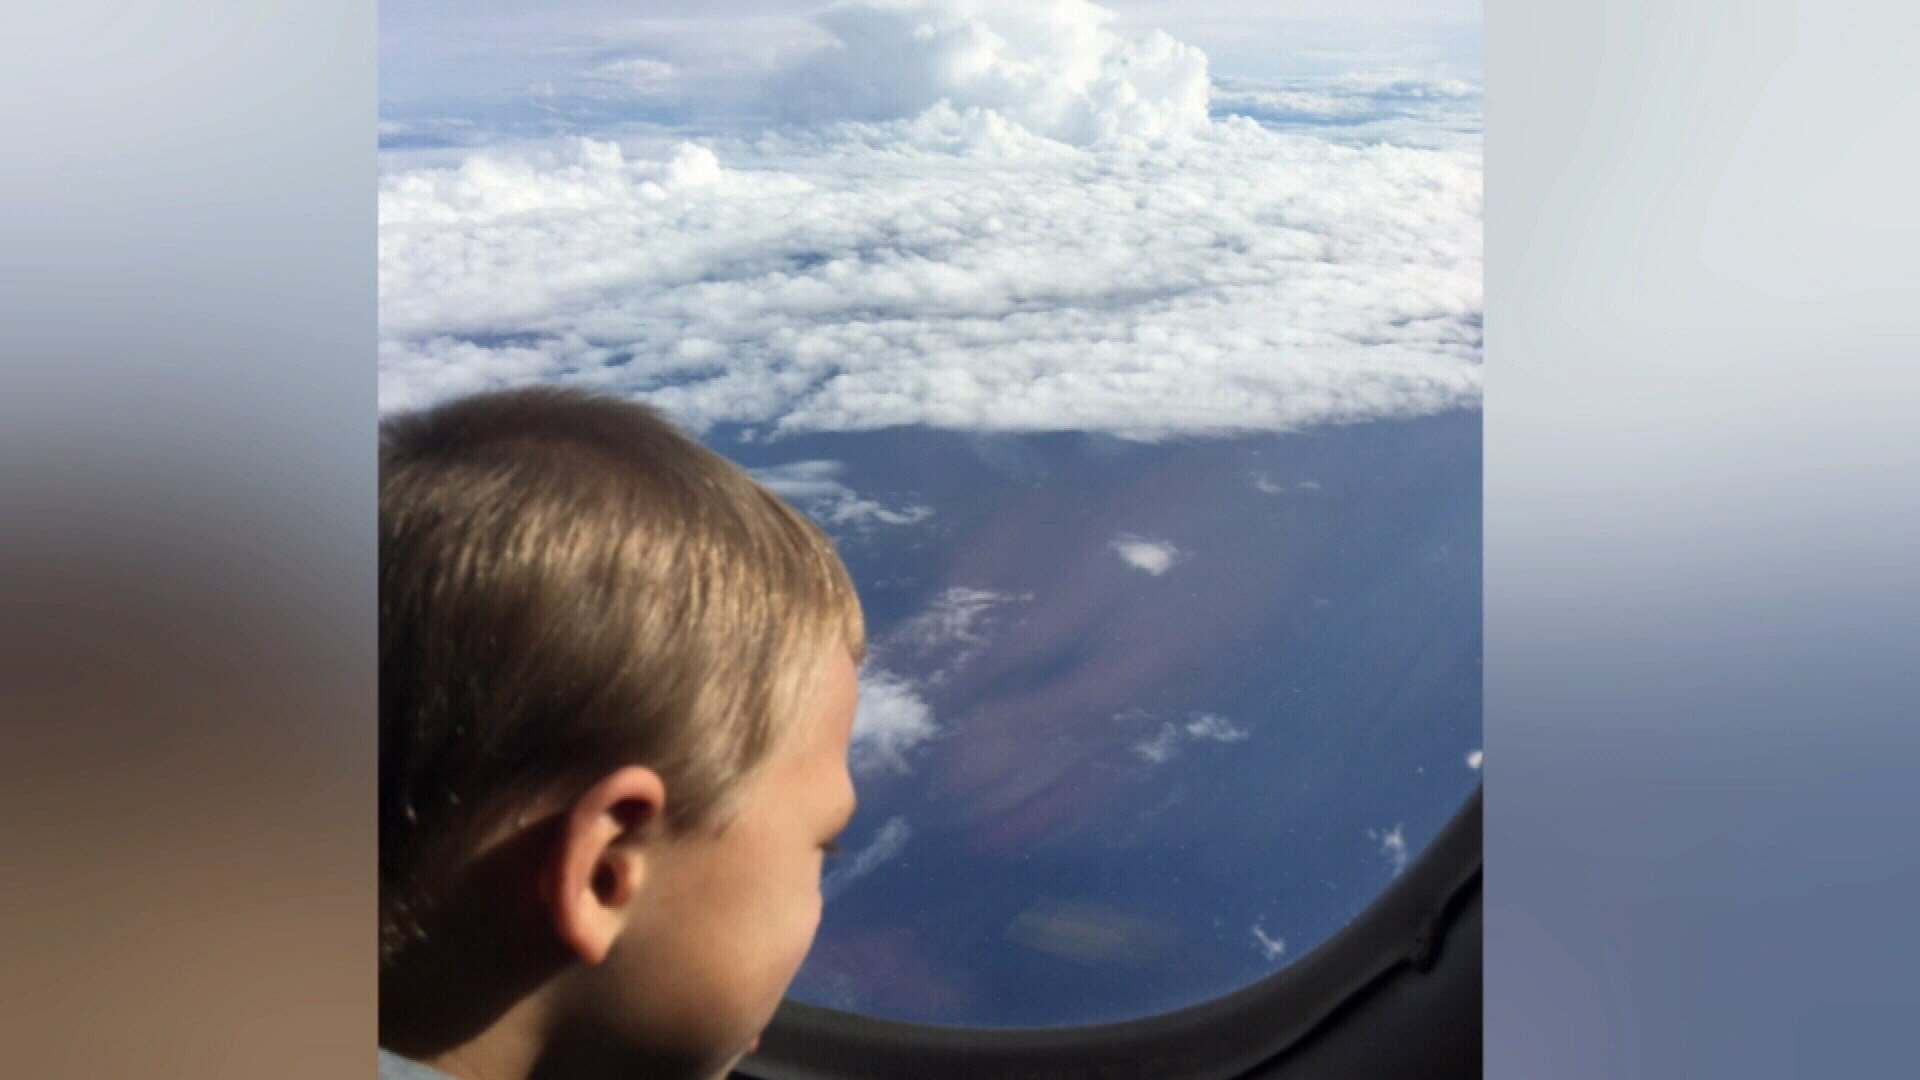 Cestero's wife and two young children flew to Corpus Christi on a Border Protection plane, leaving behind their flooded home, damaged school, and devastated Island.